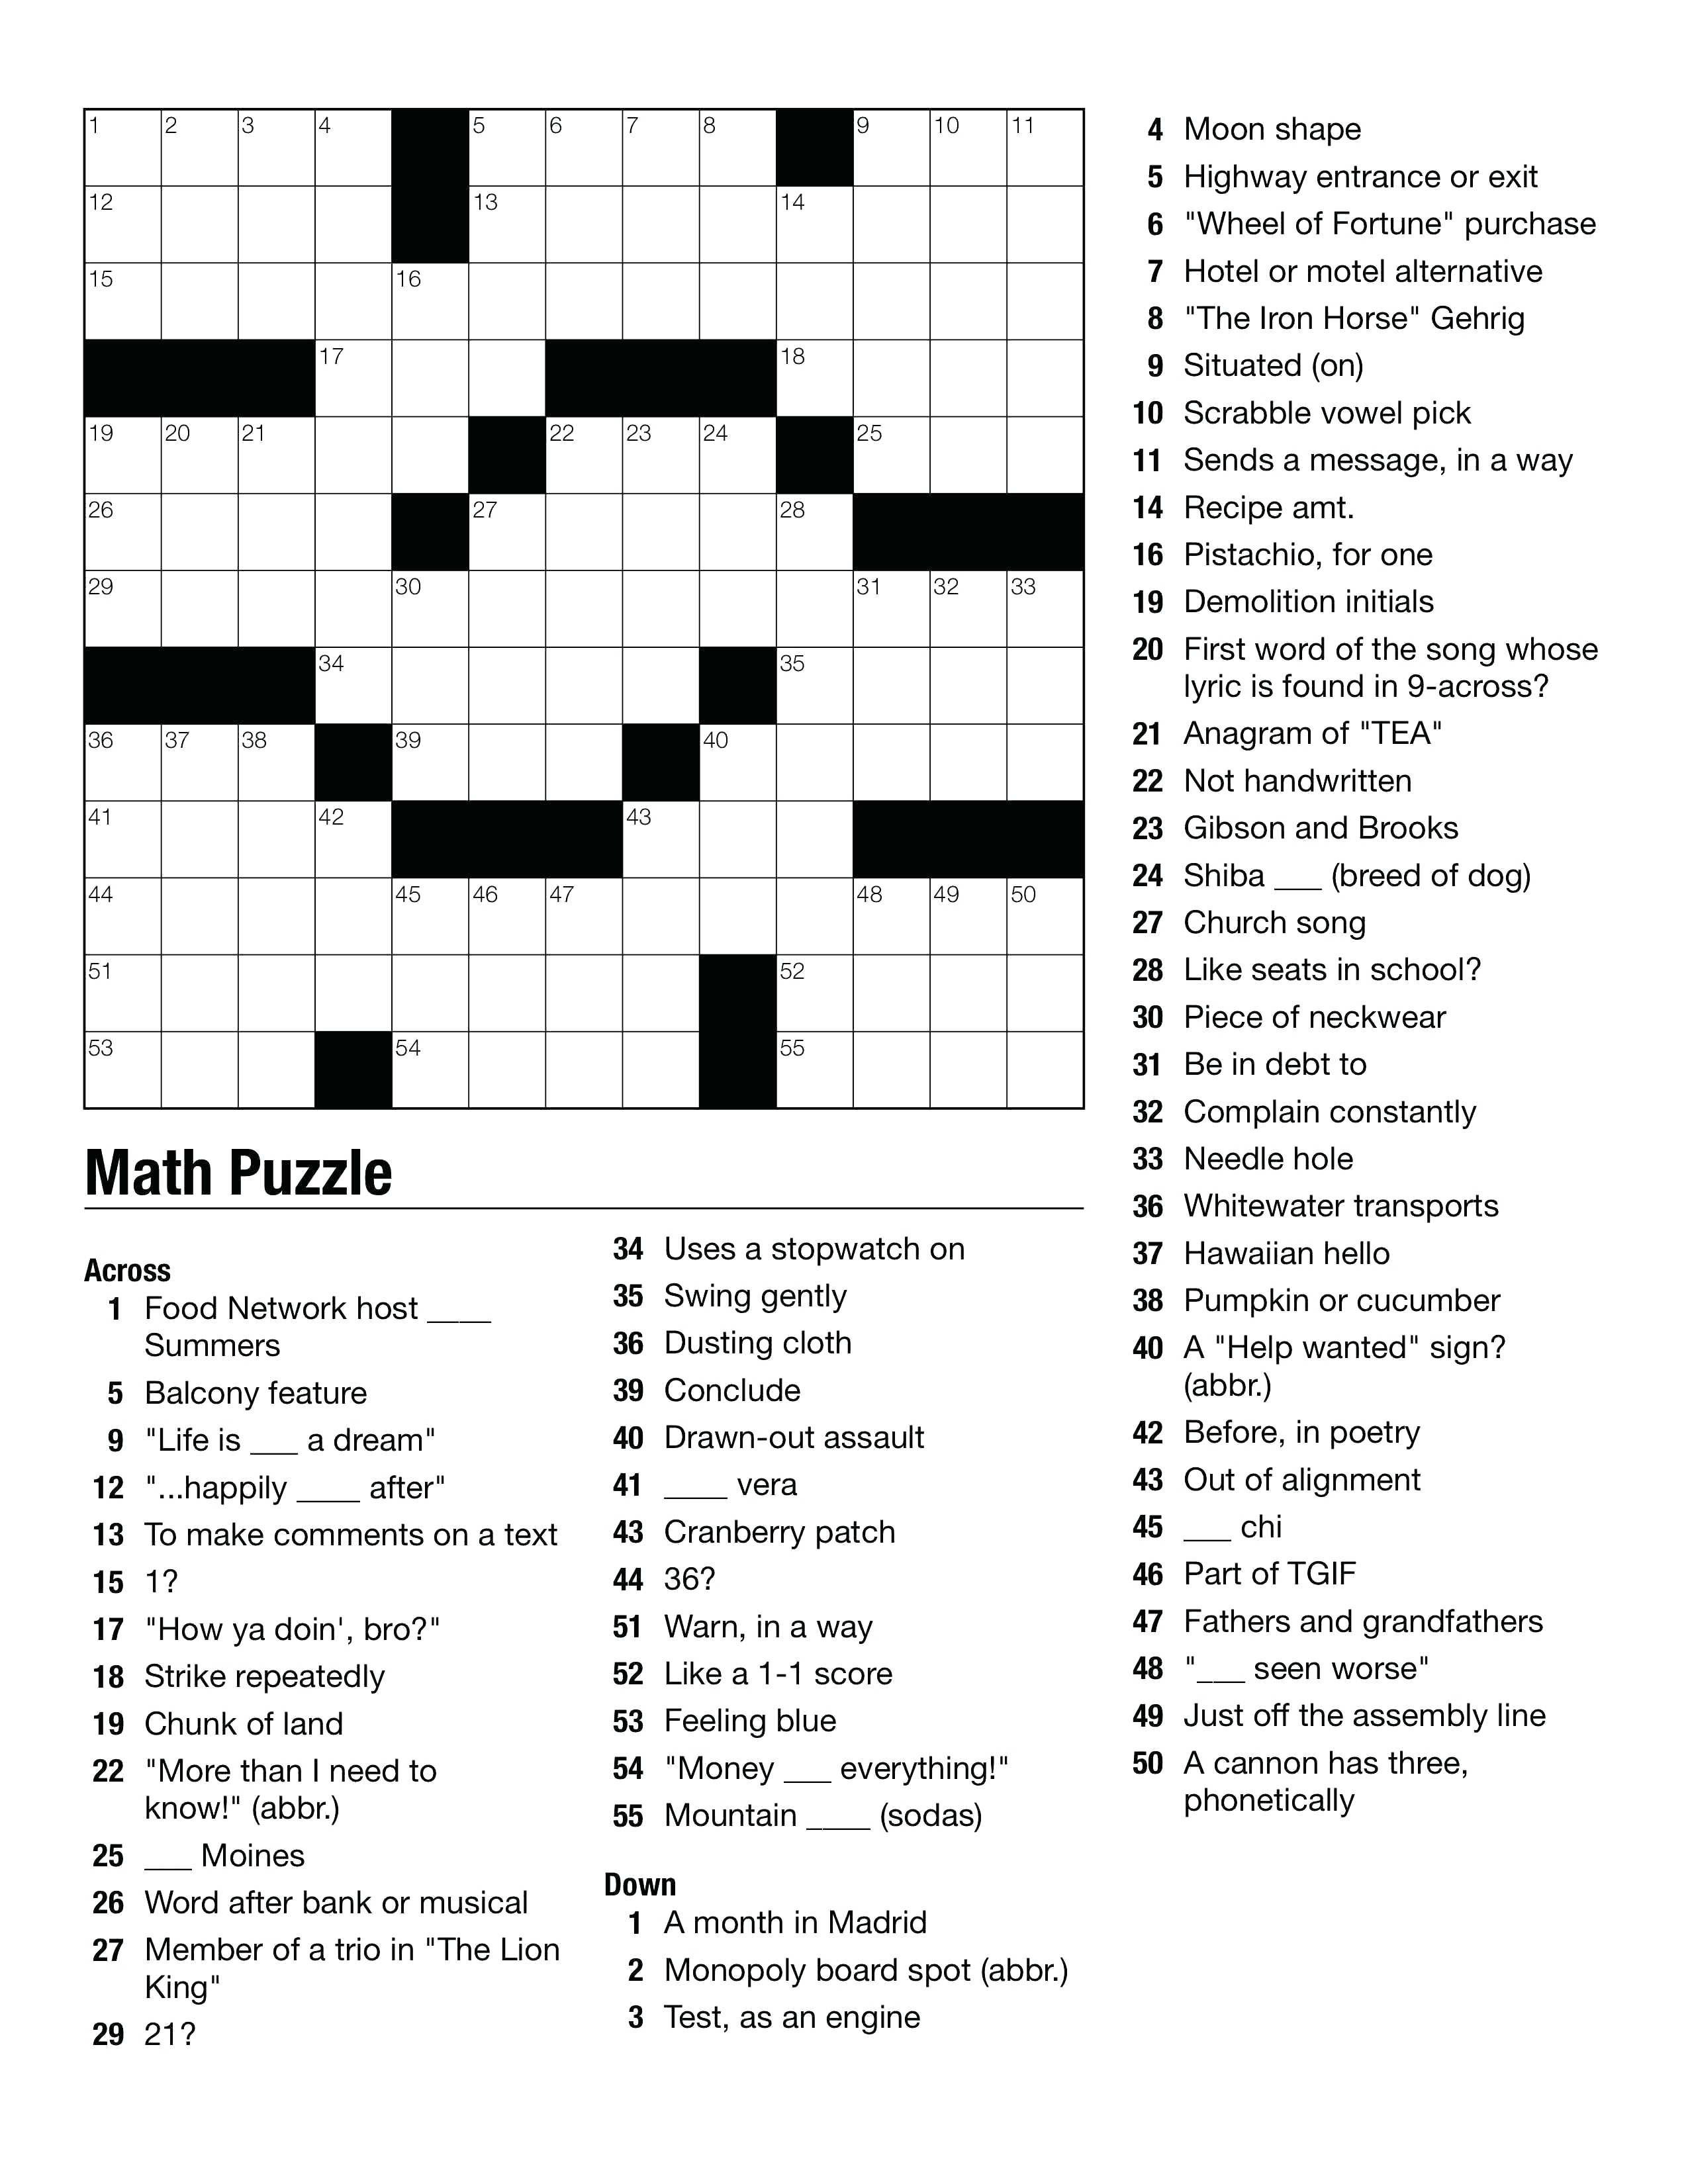 Geometry Puzzles Math Geometry Images Teaching Ideas On Crossword - Printable Math Crossword Puzzles For High School